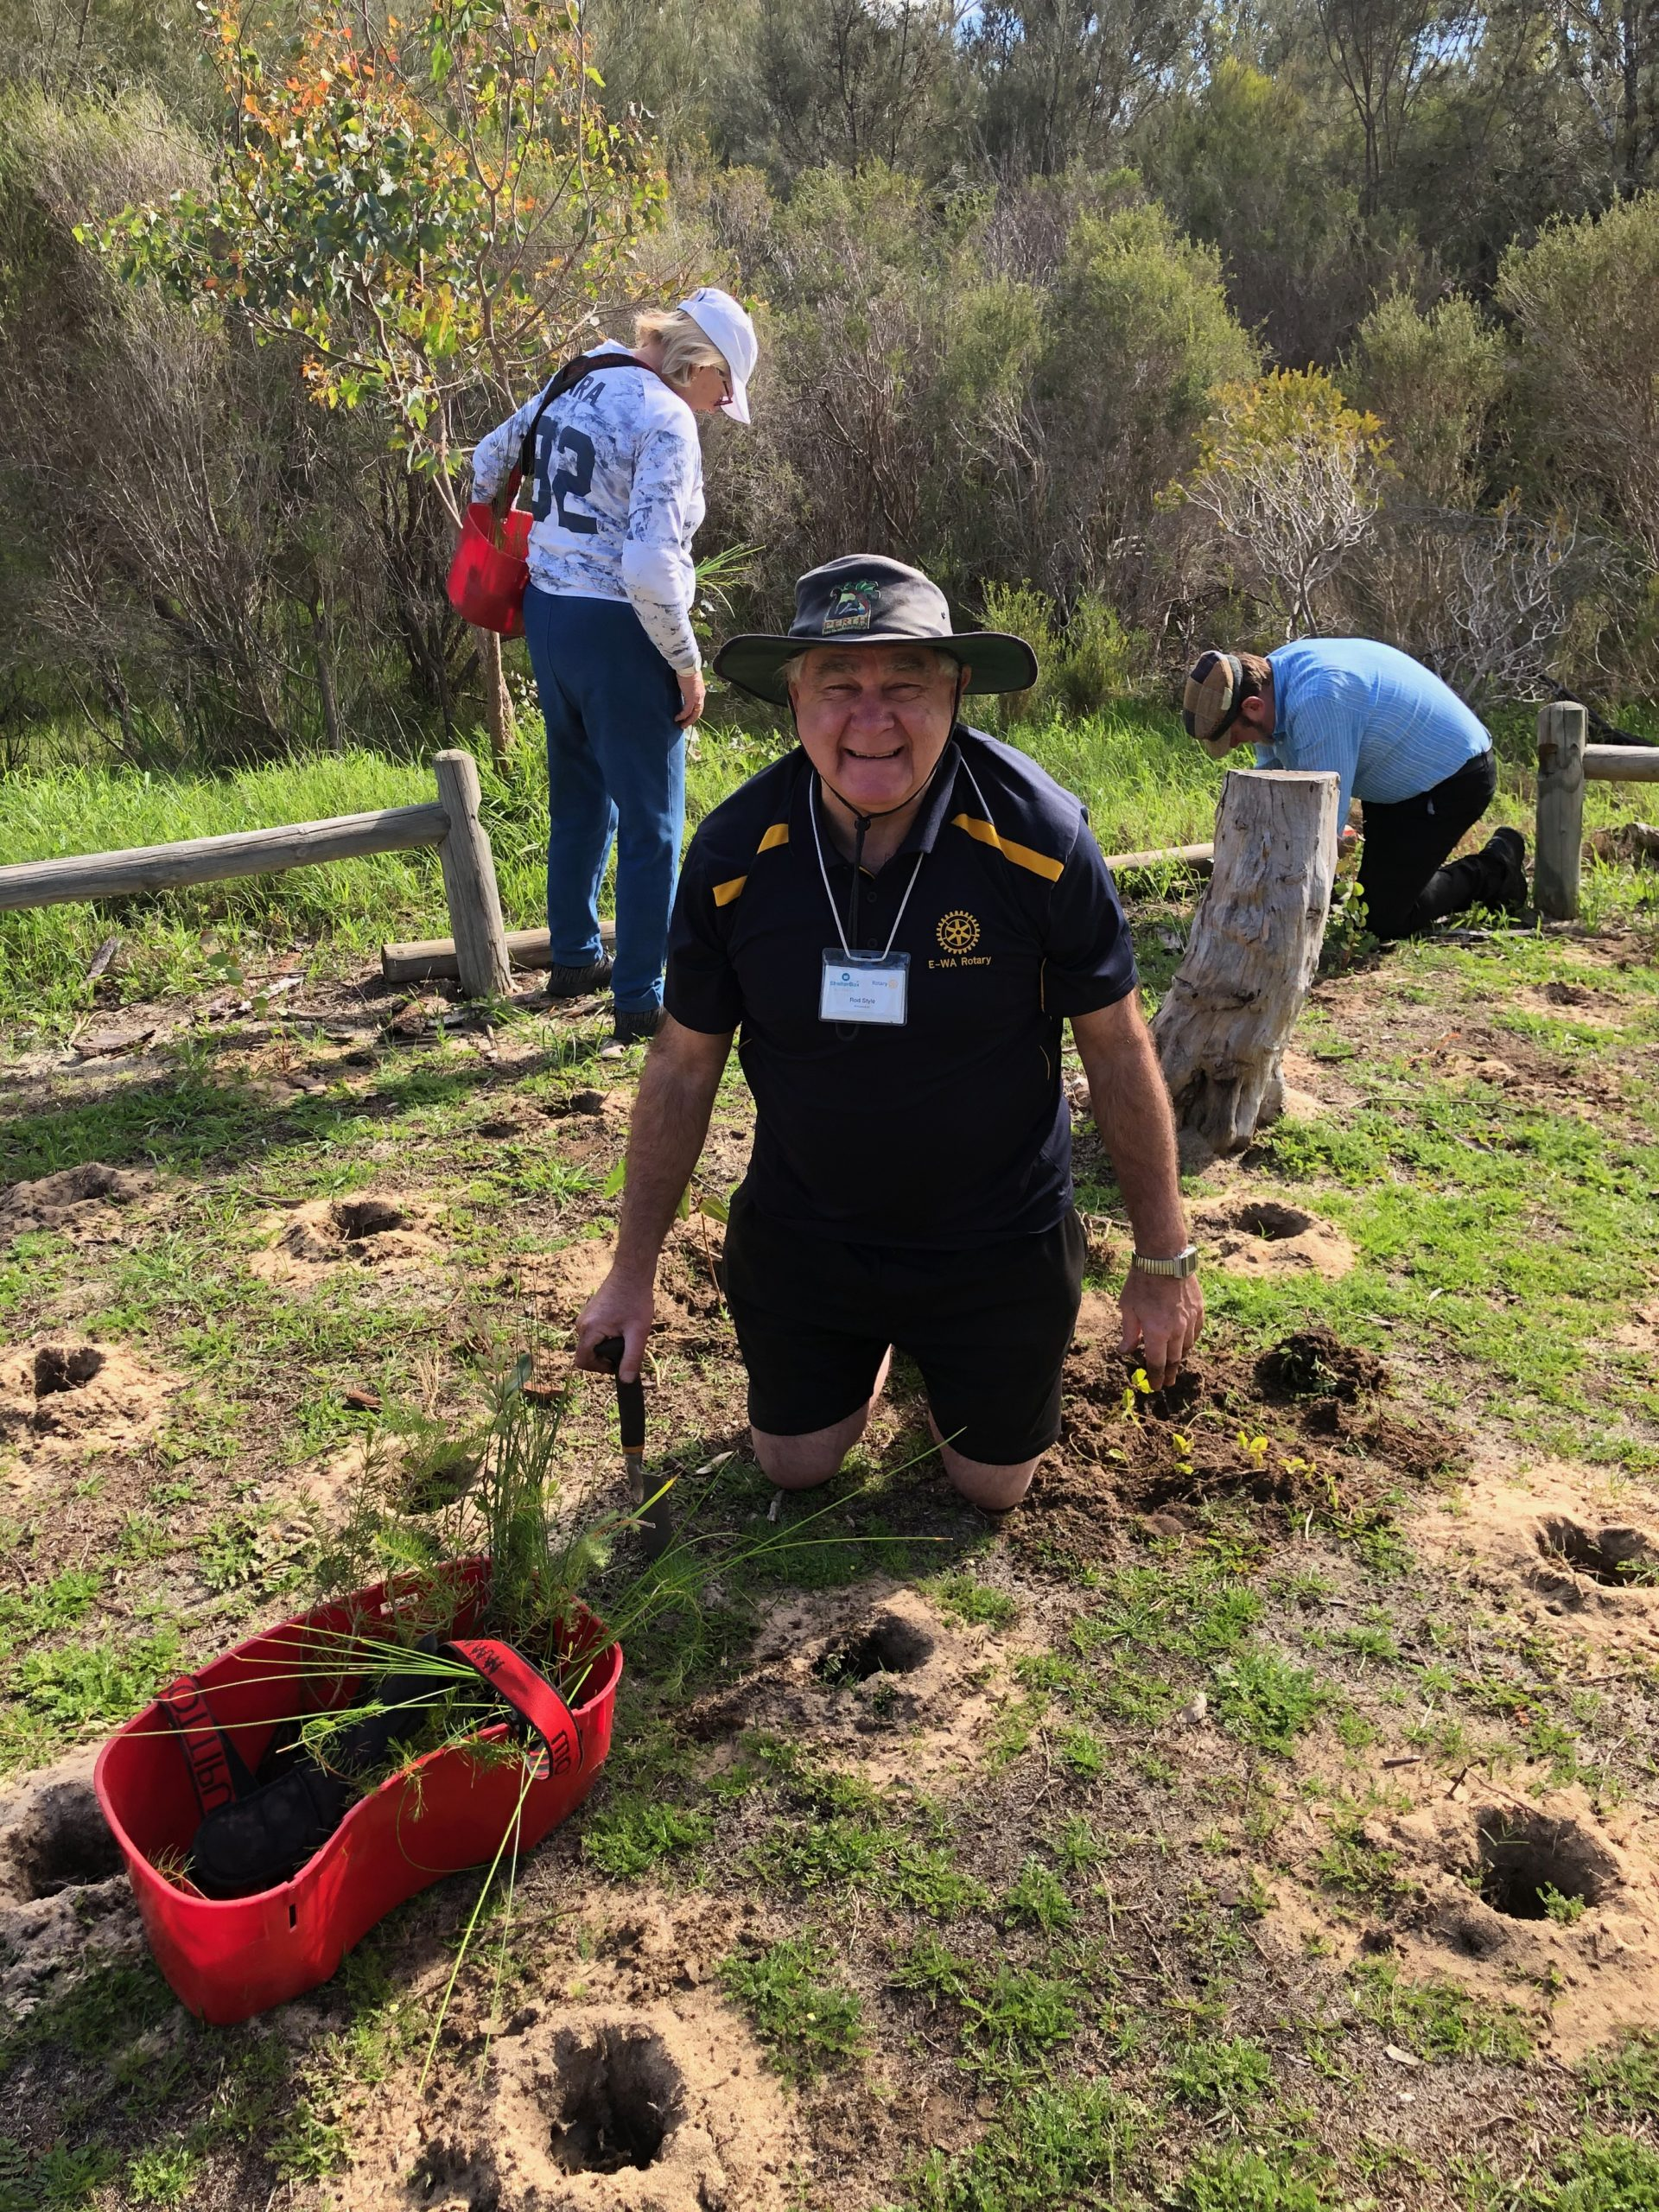 Rod is planting with a digging tool